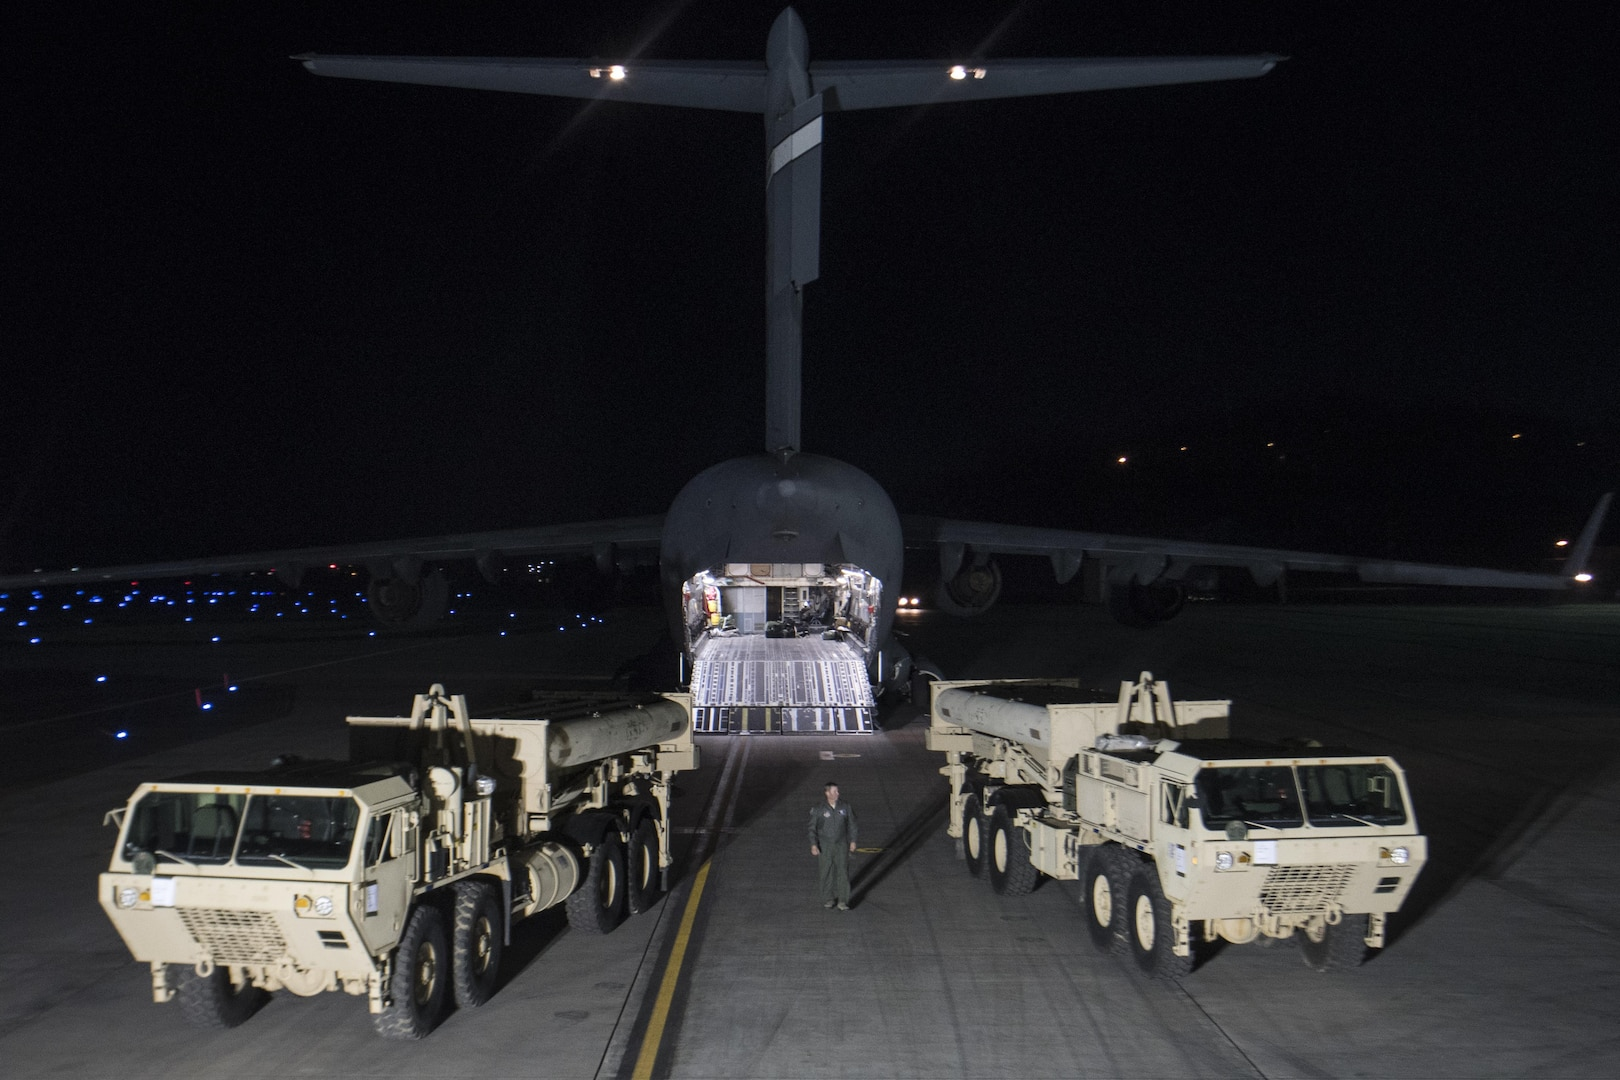 """U.S. Forces Korea continued its progress in fulfilling the South Korea-U.S. alliance decision to install a Terminal High Altitude Area Defense, or THAAD, on the Korean Peninsula as the first elements of the THAAD system arrived in South Korea, March 6, 2017. """"The timely deployment of the THAAD system by U.S. Pacific Command and the secretary of defense gives my command great confidence in the support we will receive when we ask for reinforcement or advanced capabilities,"""" said Army Gen. Vincent K. Brooks, U.S. Forces Korea commander."""